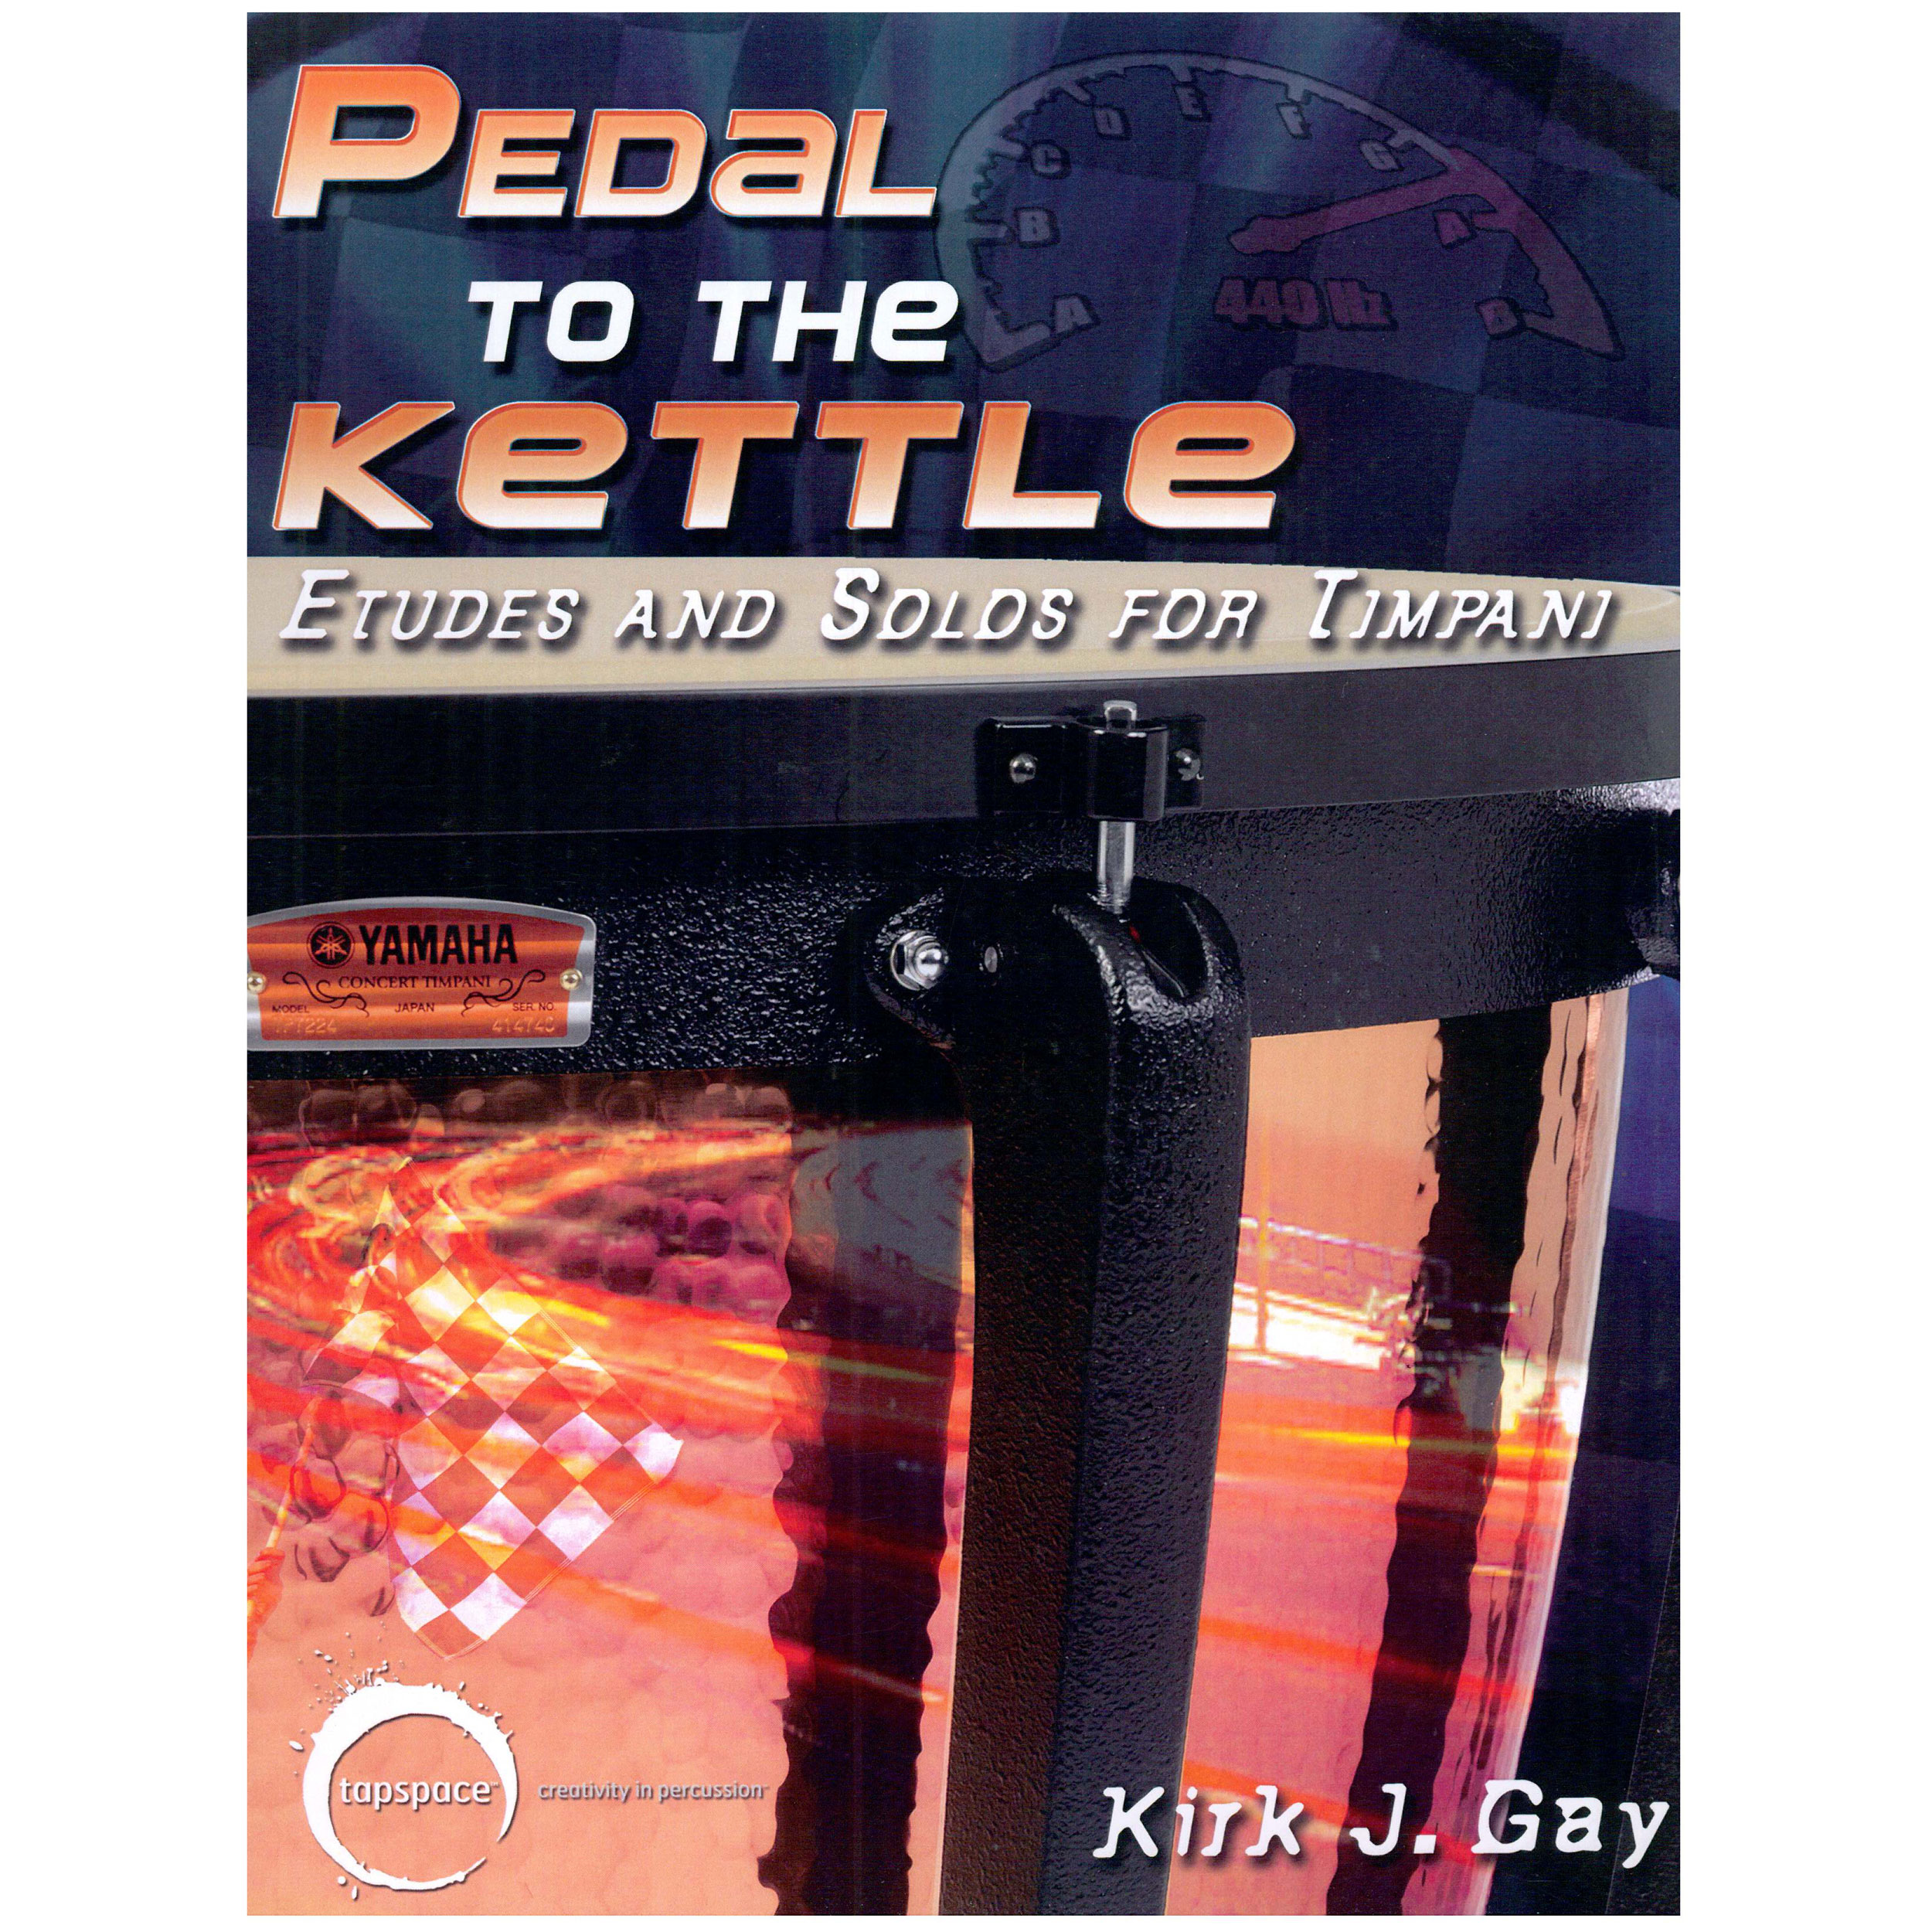 Pedal to the Kettle by Kirk J. Gay